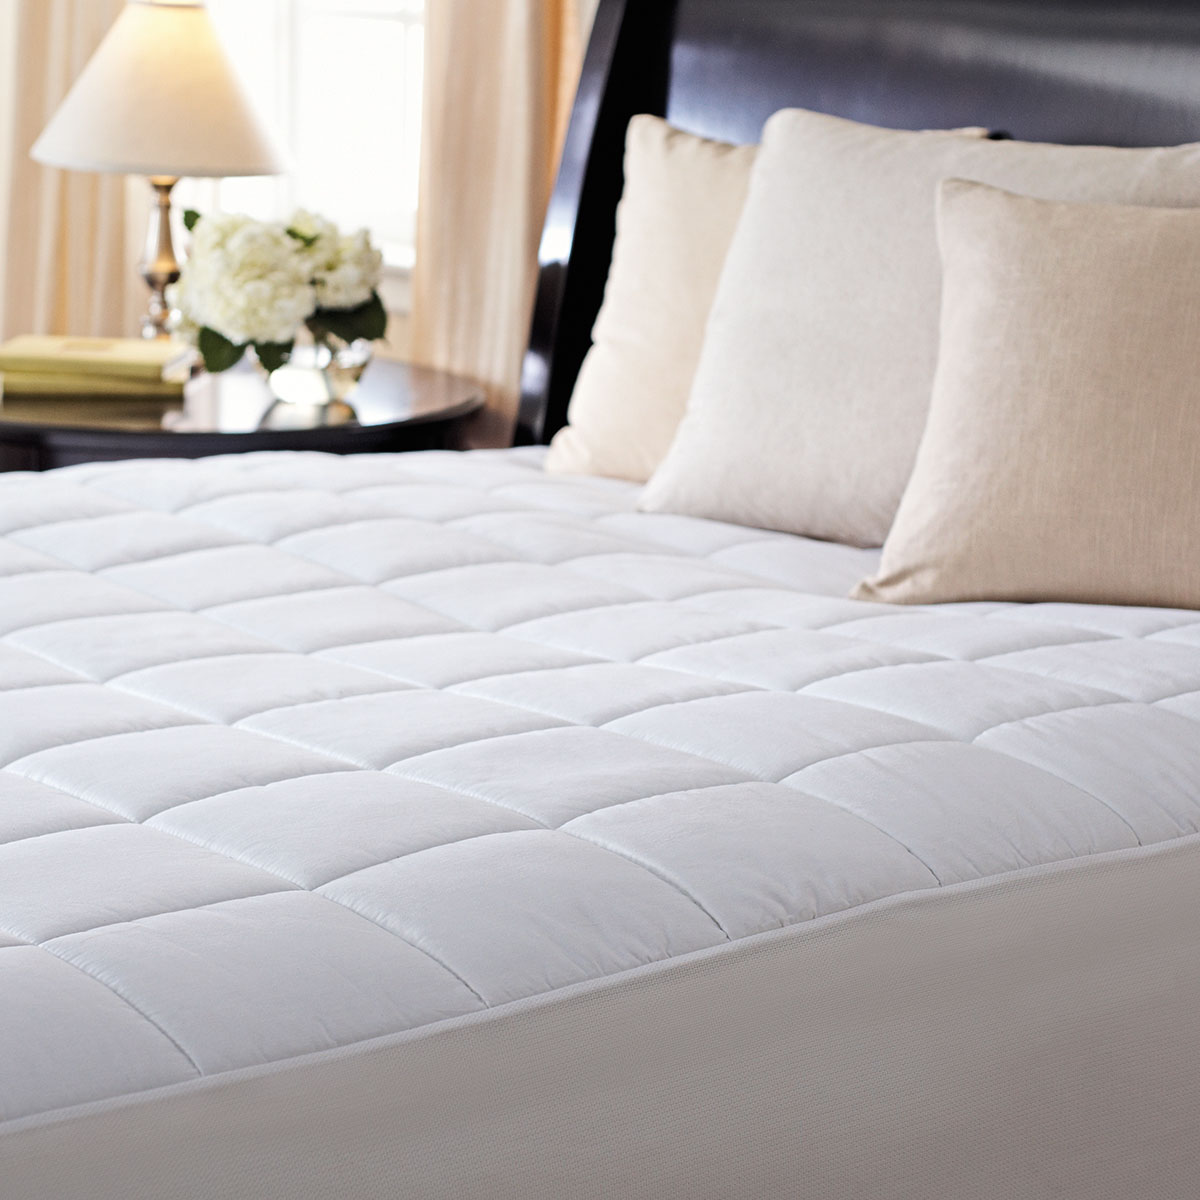 sunbeam® ultra premium quilted heated mattress pad, queen | sunbeam